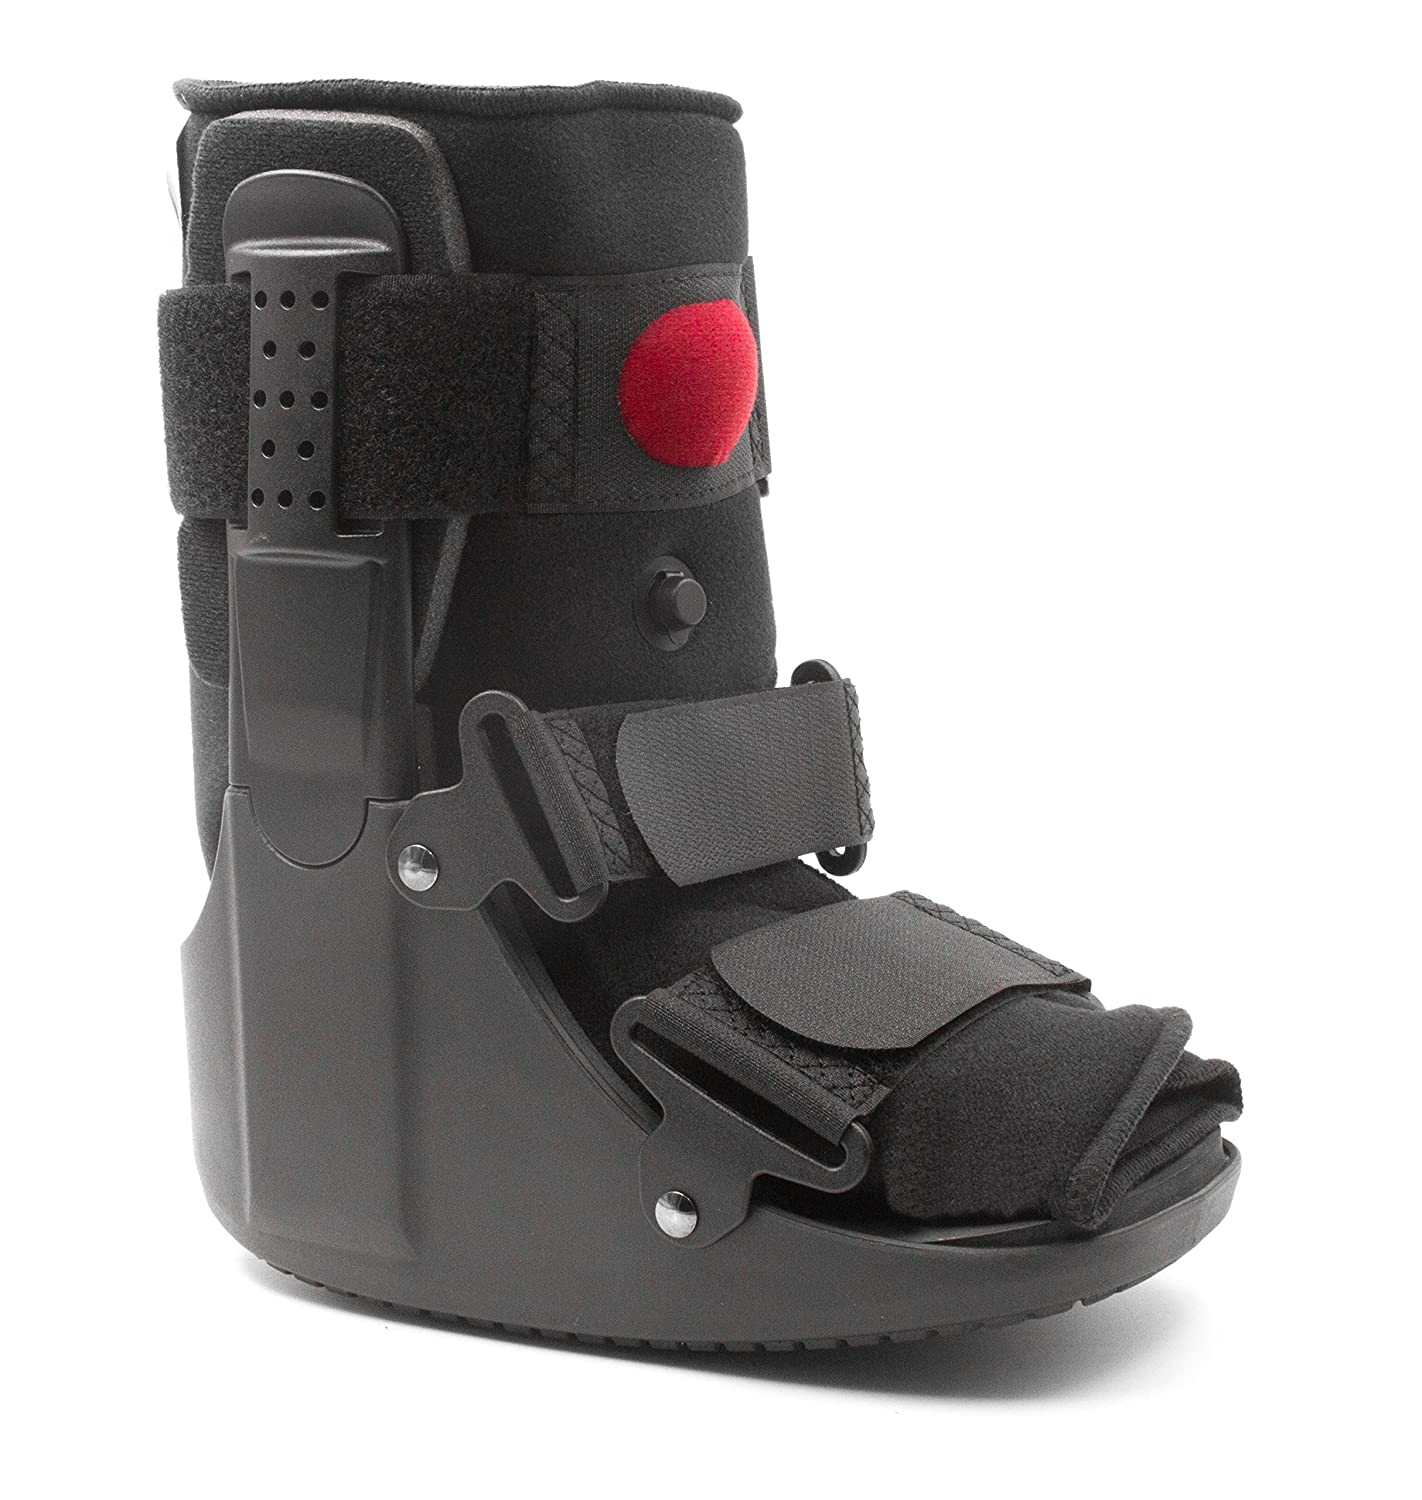 Amazon.com: Mars Wellness Premium Short Air Cam Walker Fracture Ankle/Foot Stabilizer Boot - Large: Health & Personal Care